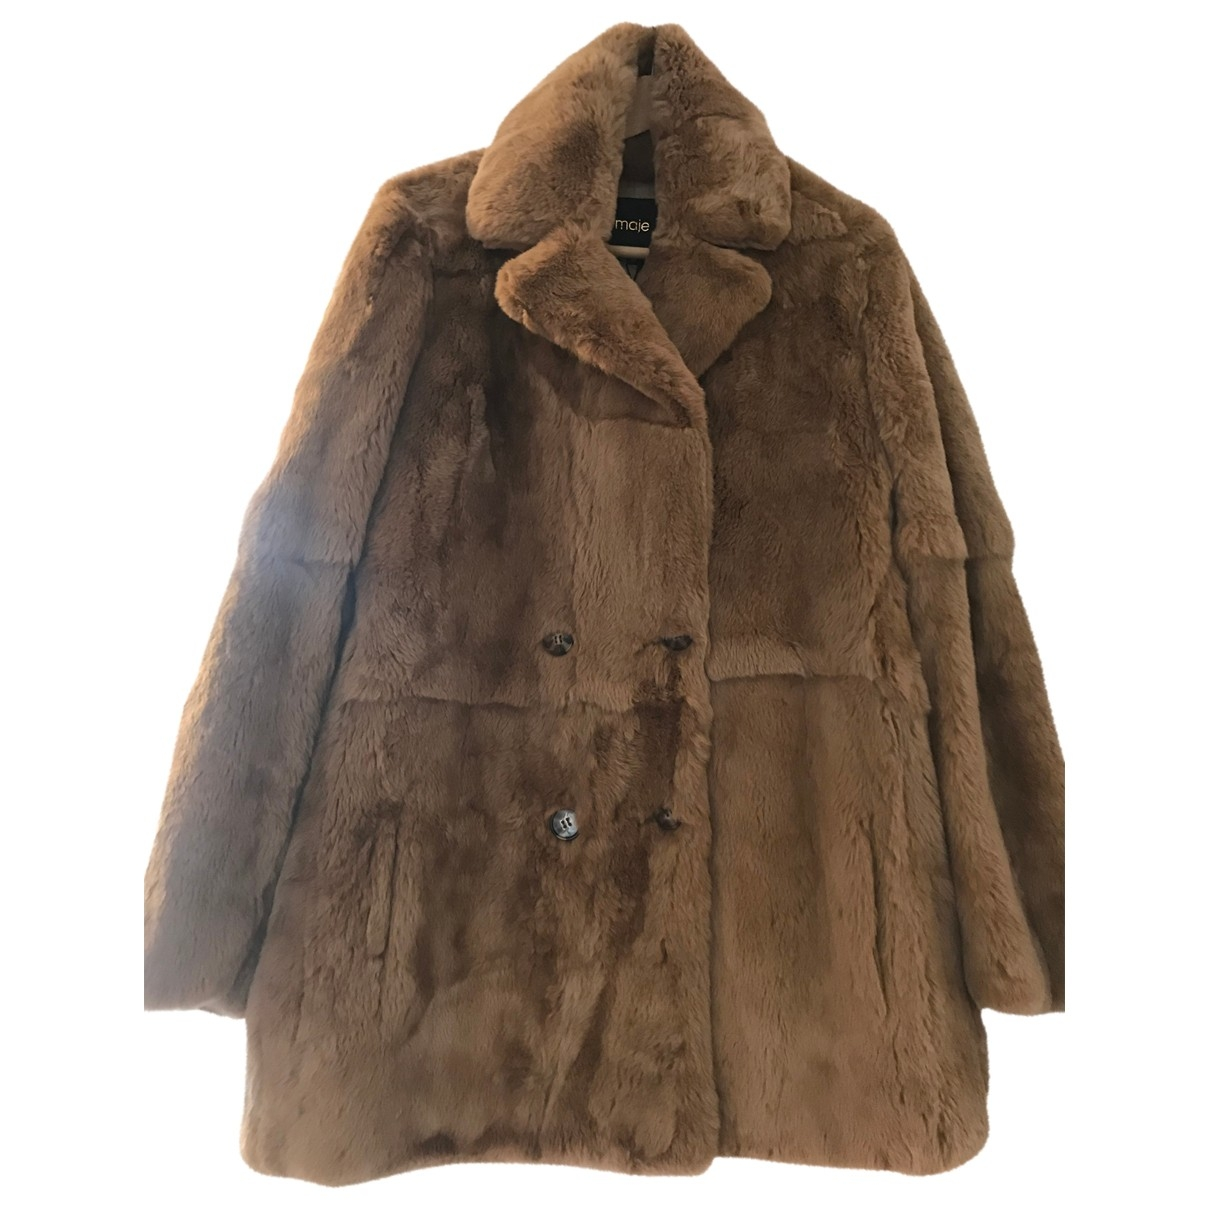 Maje \N Beige Rabbit coat for Women 40 FR